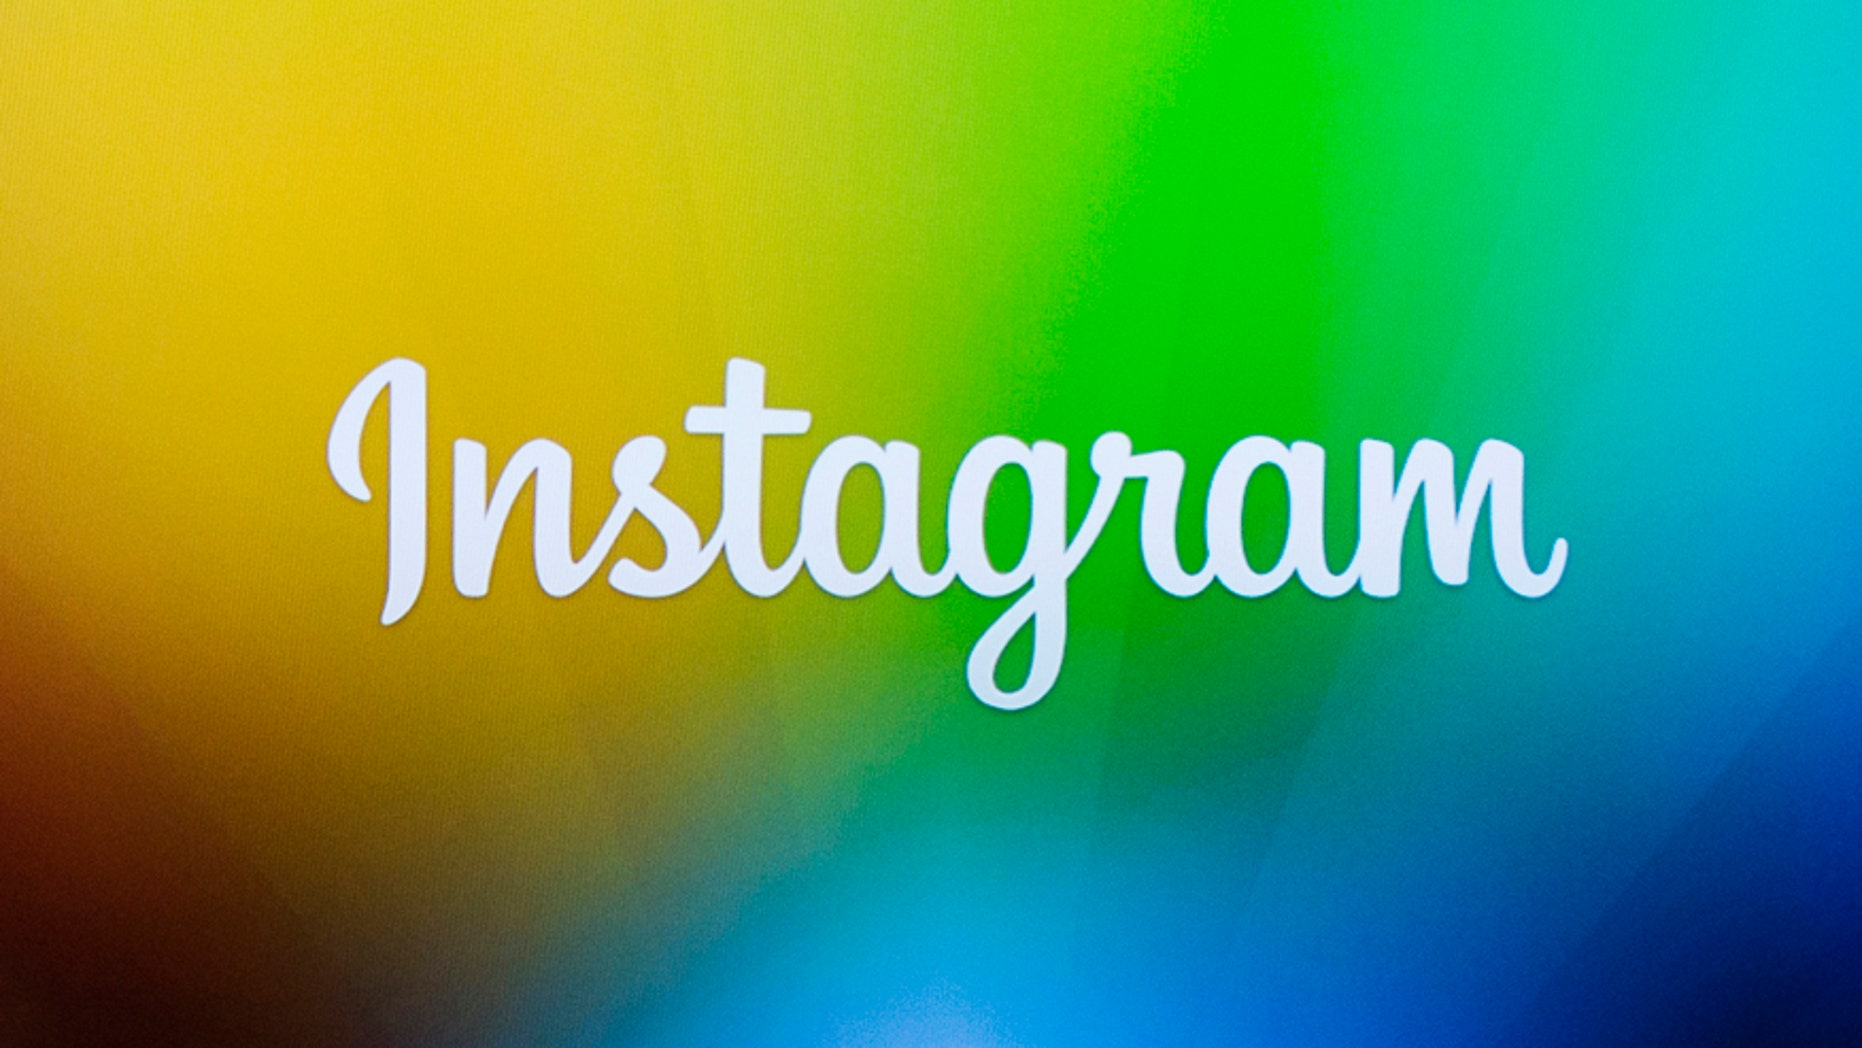 File photo - A screen displays the Instagram logo during a presentation by co-founder Kevin Systrom in New York Dec. 12, 2013. (REUTERS/Lucas Jackson)